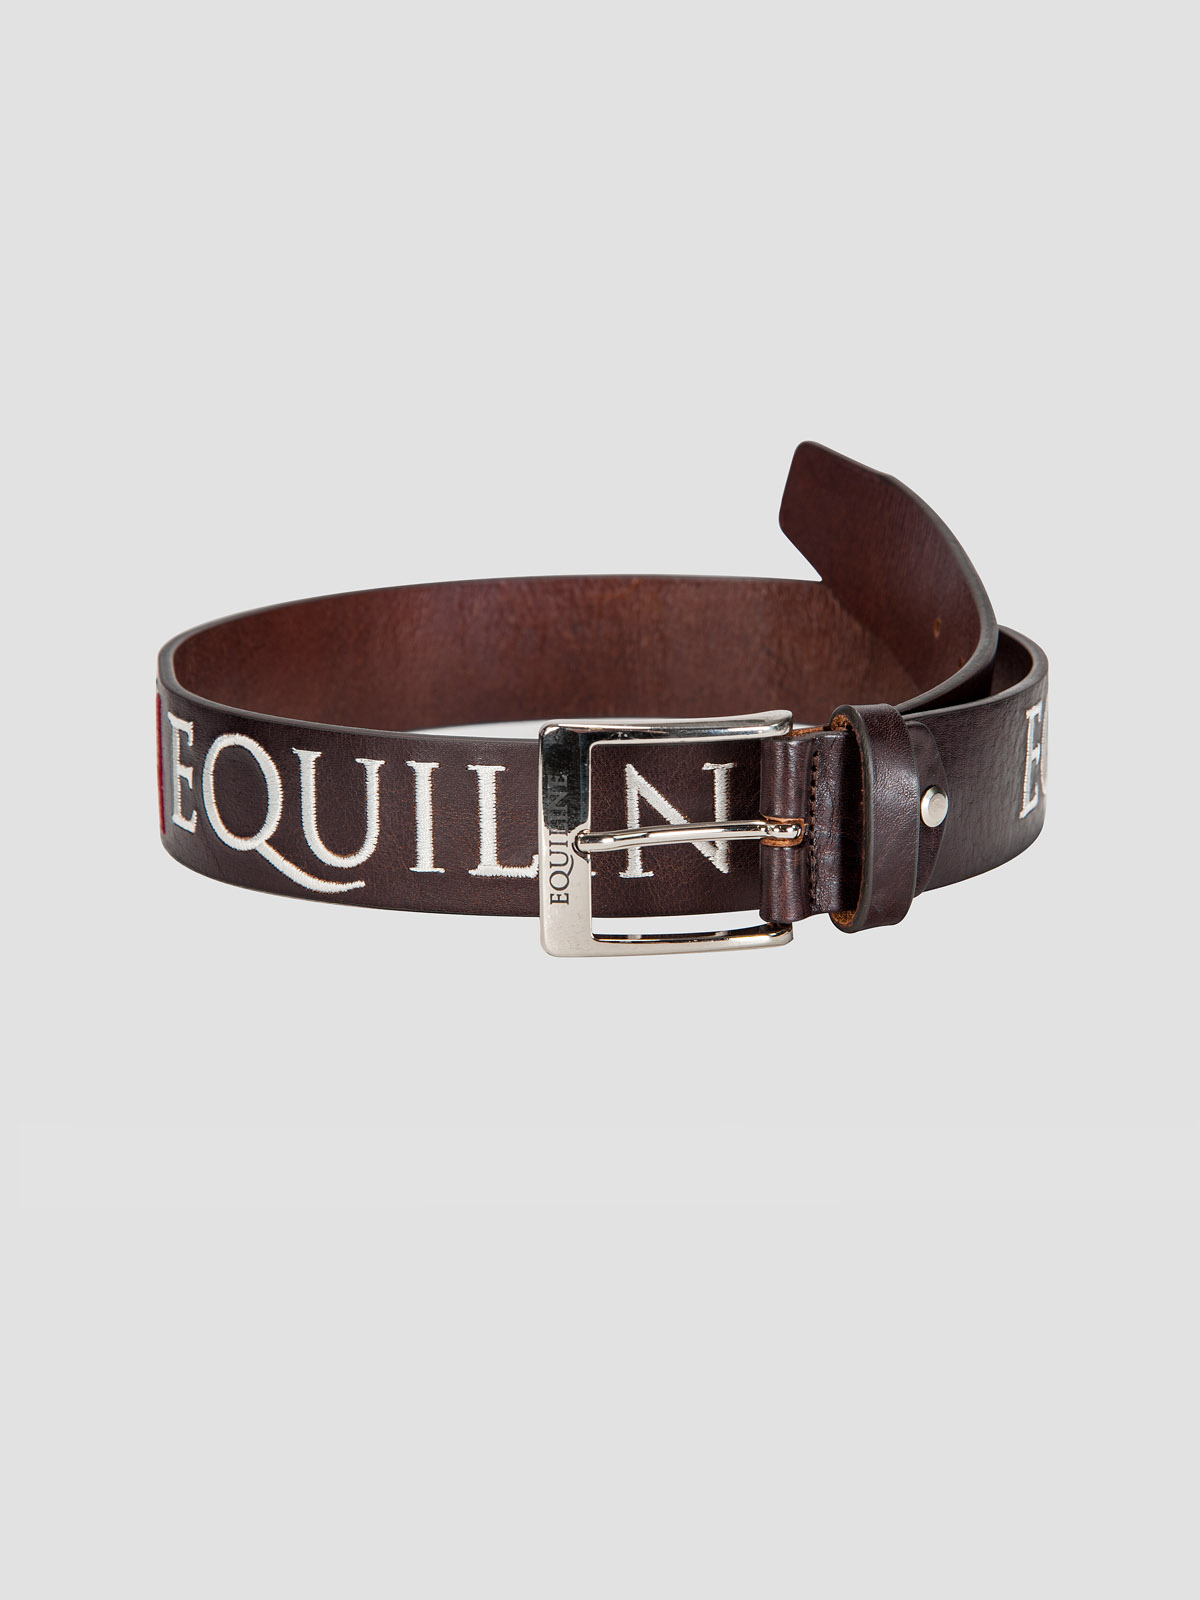 RALPH - Unisex Leather Belt with Italian Flag Embroidery 1